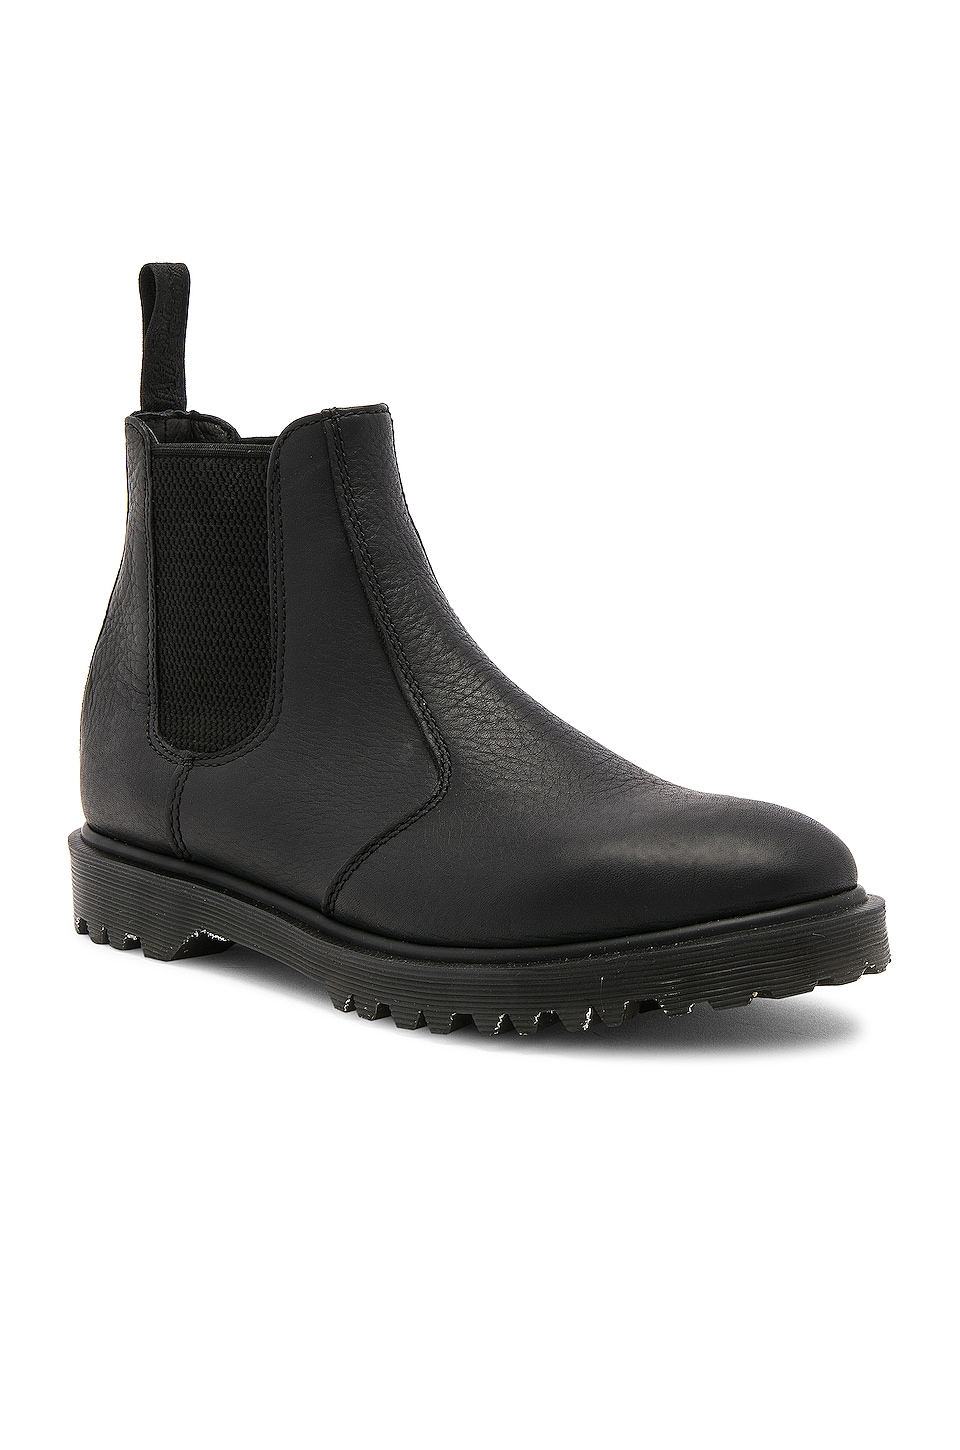 Dr. Martens 2976 Chelsea Leather Boots in Black